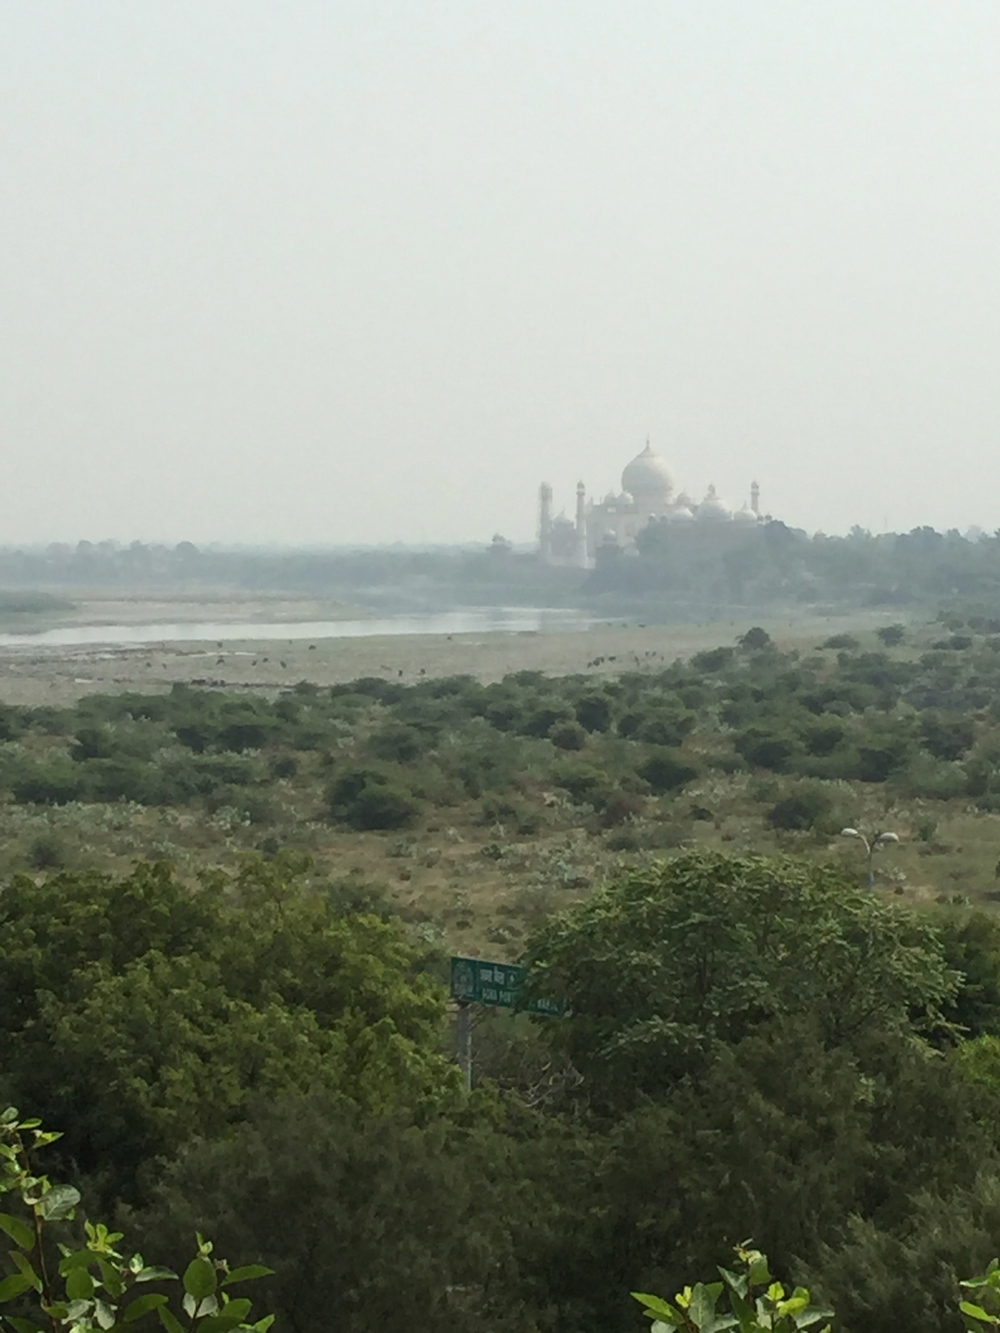 Taj Majal viewed through a typical blanket of smog.